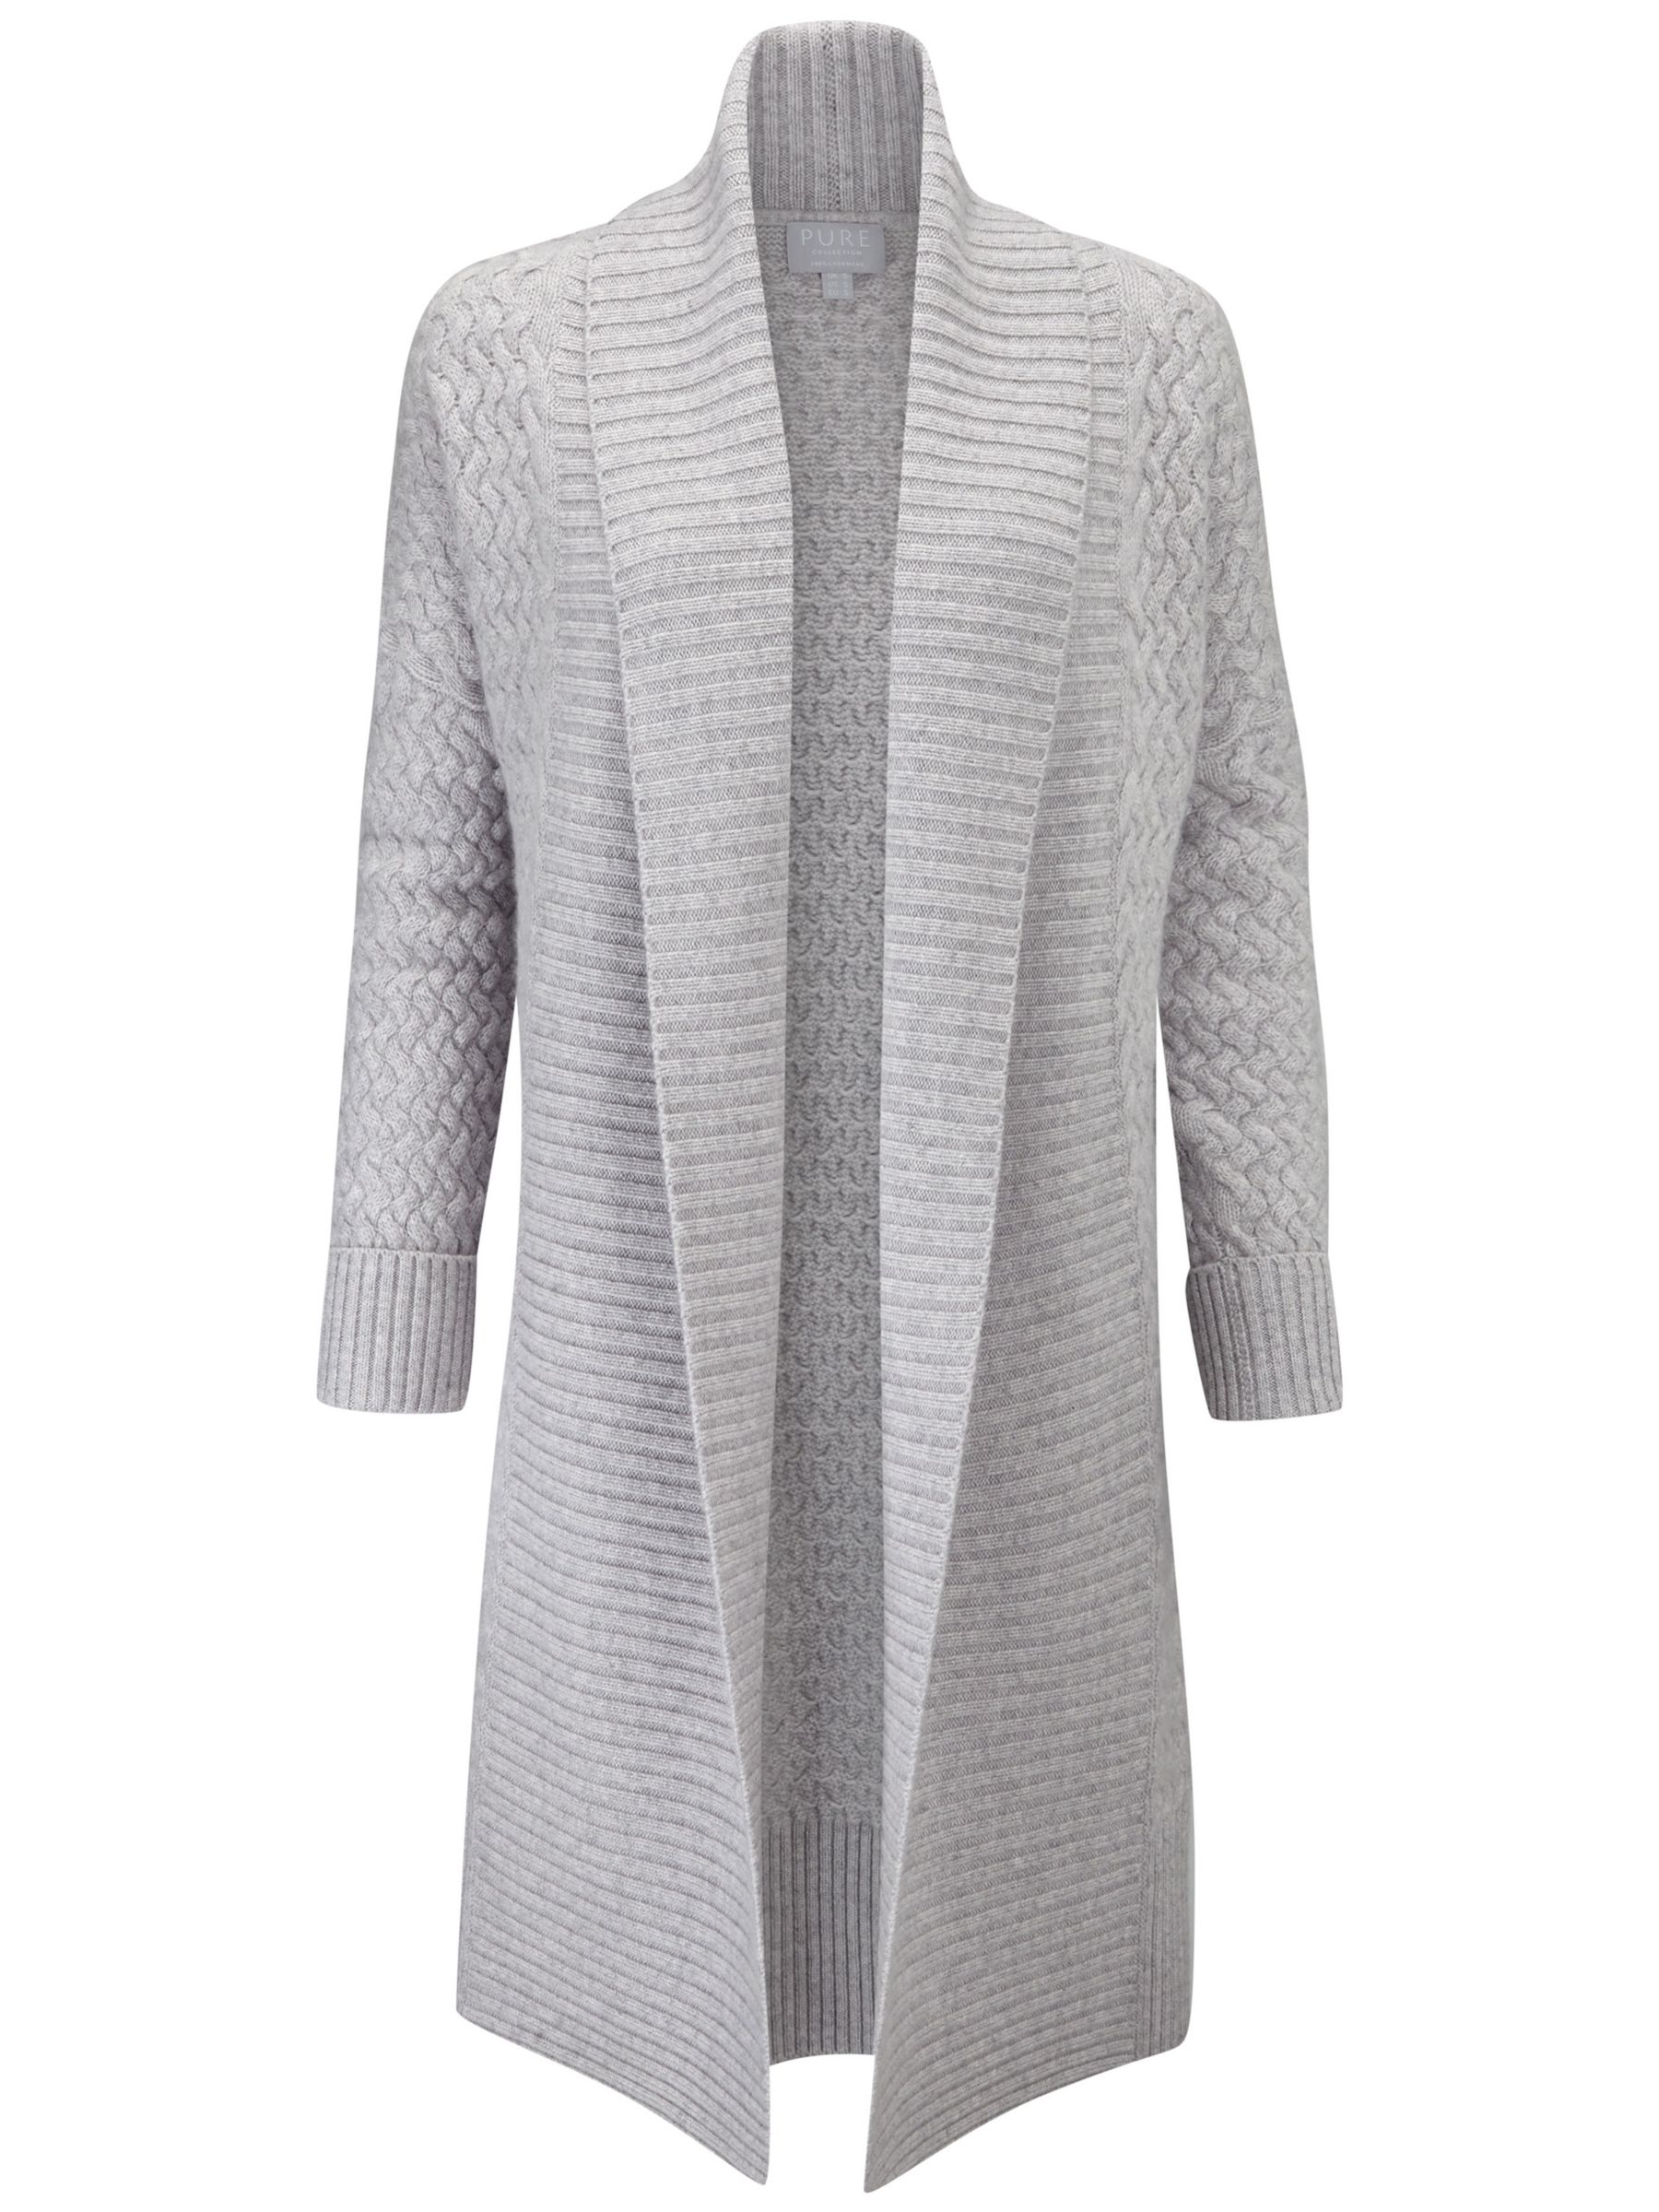 Pure Collection Luxury Cashmere Cocoon Cardigan. Heather